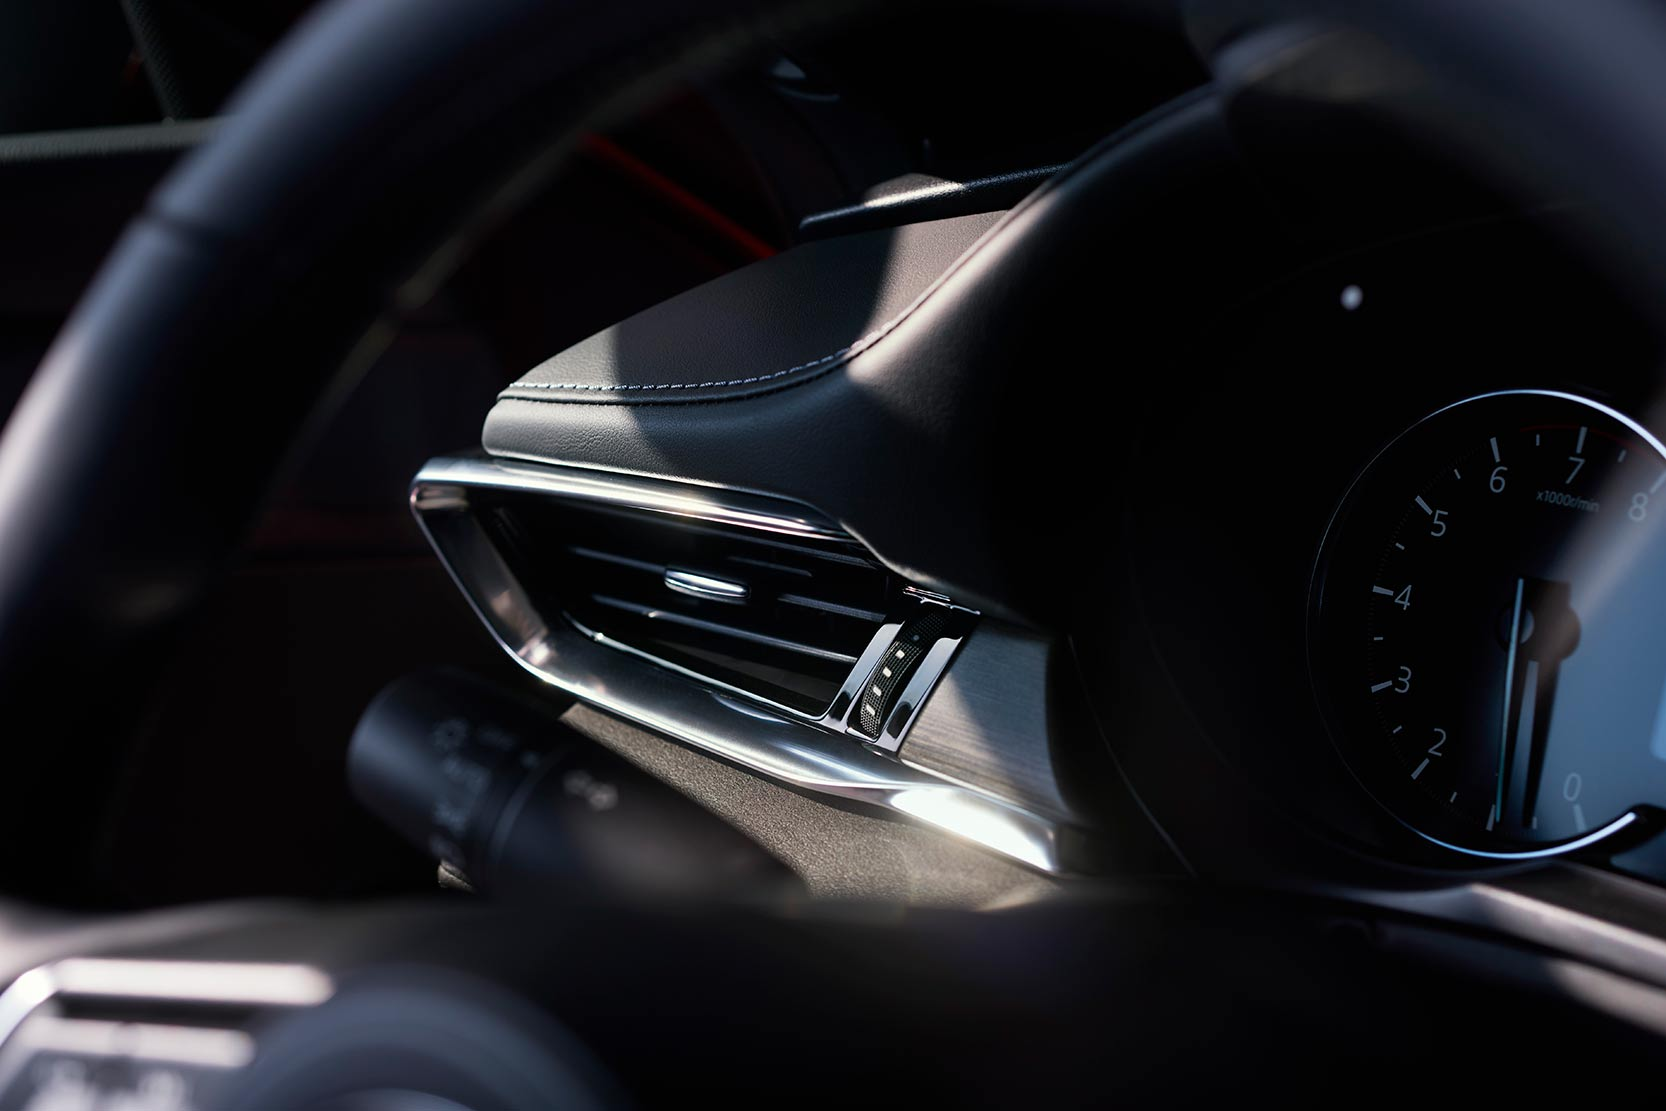 Interieur_Mazda-6-Facelift-2018_17